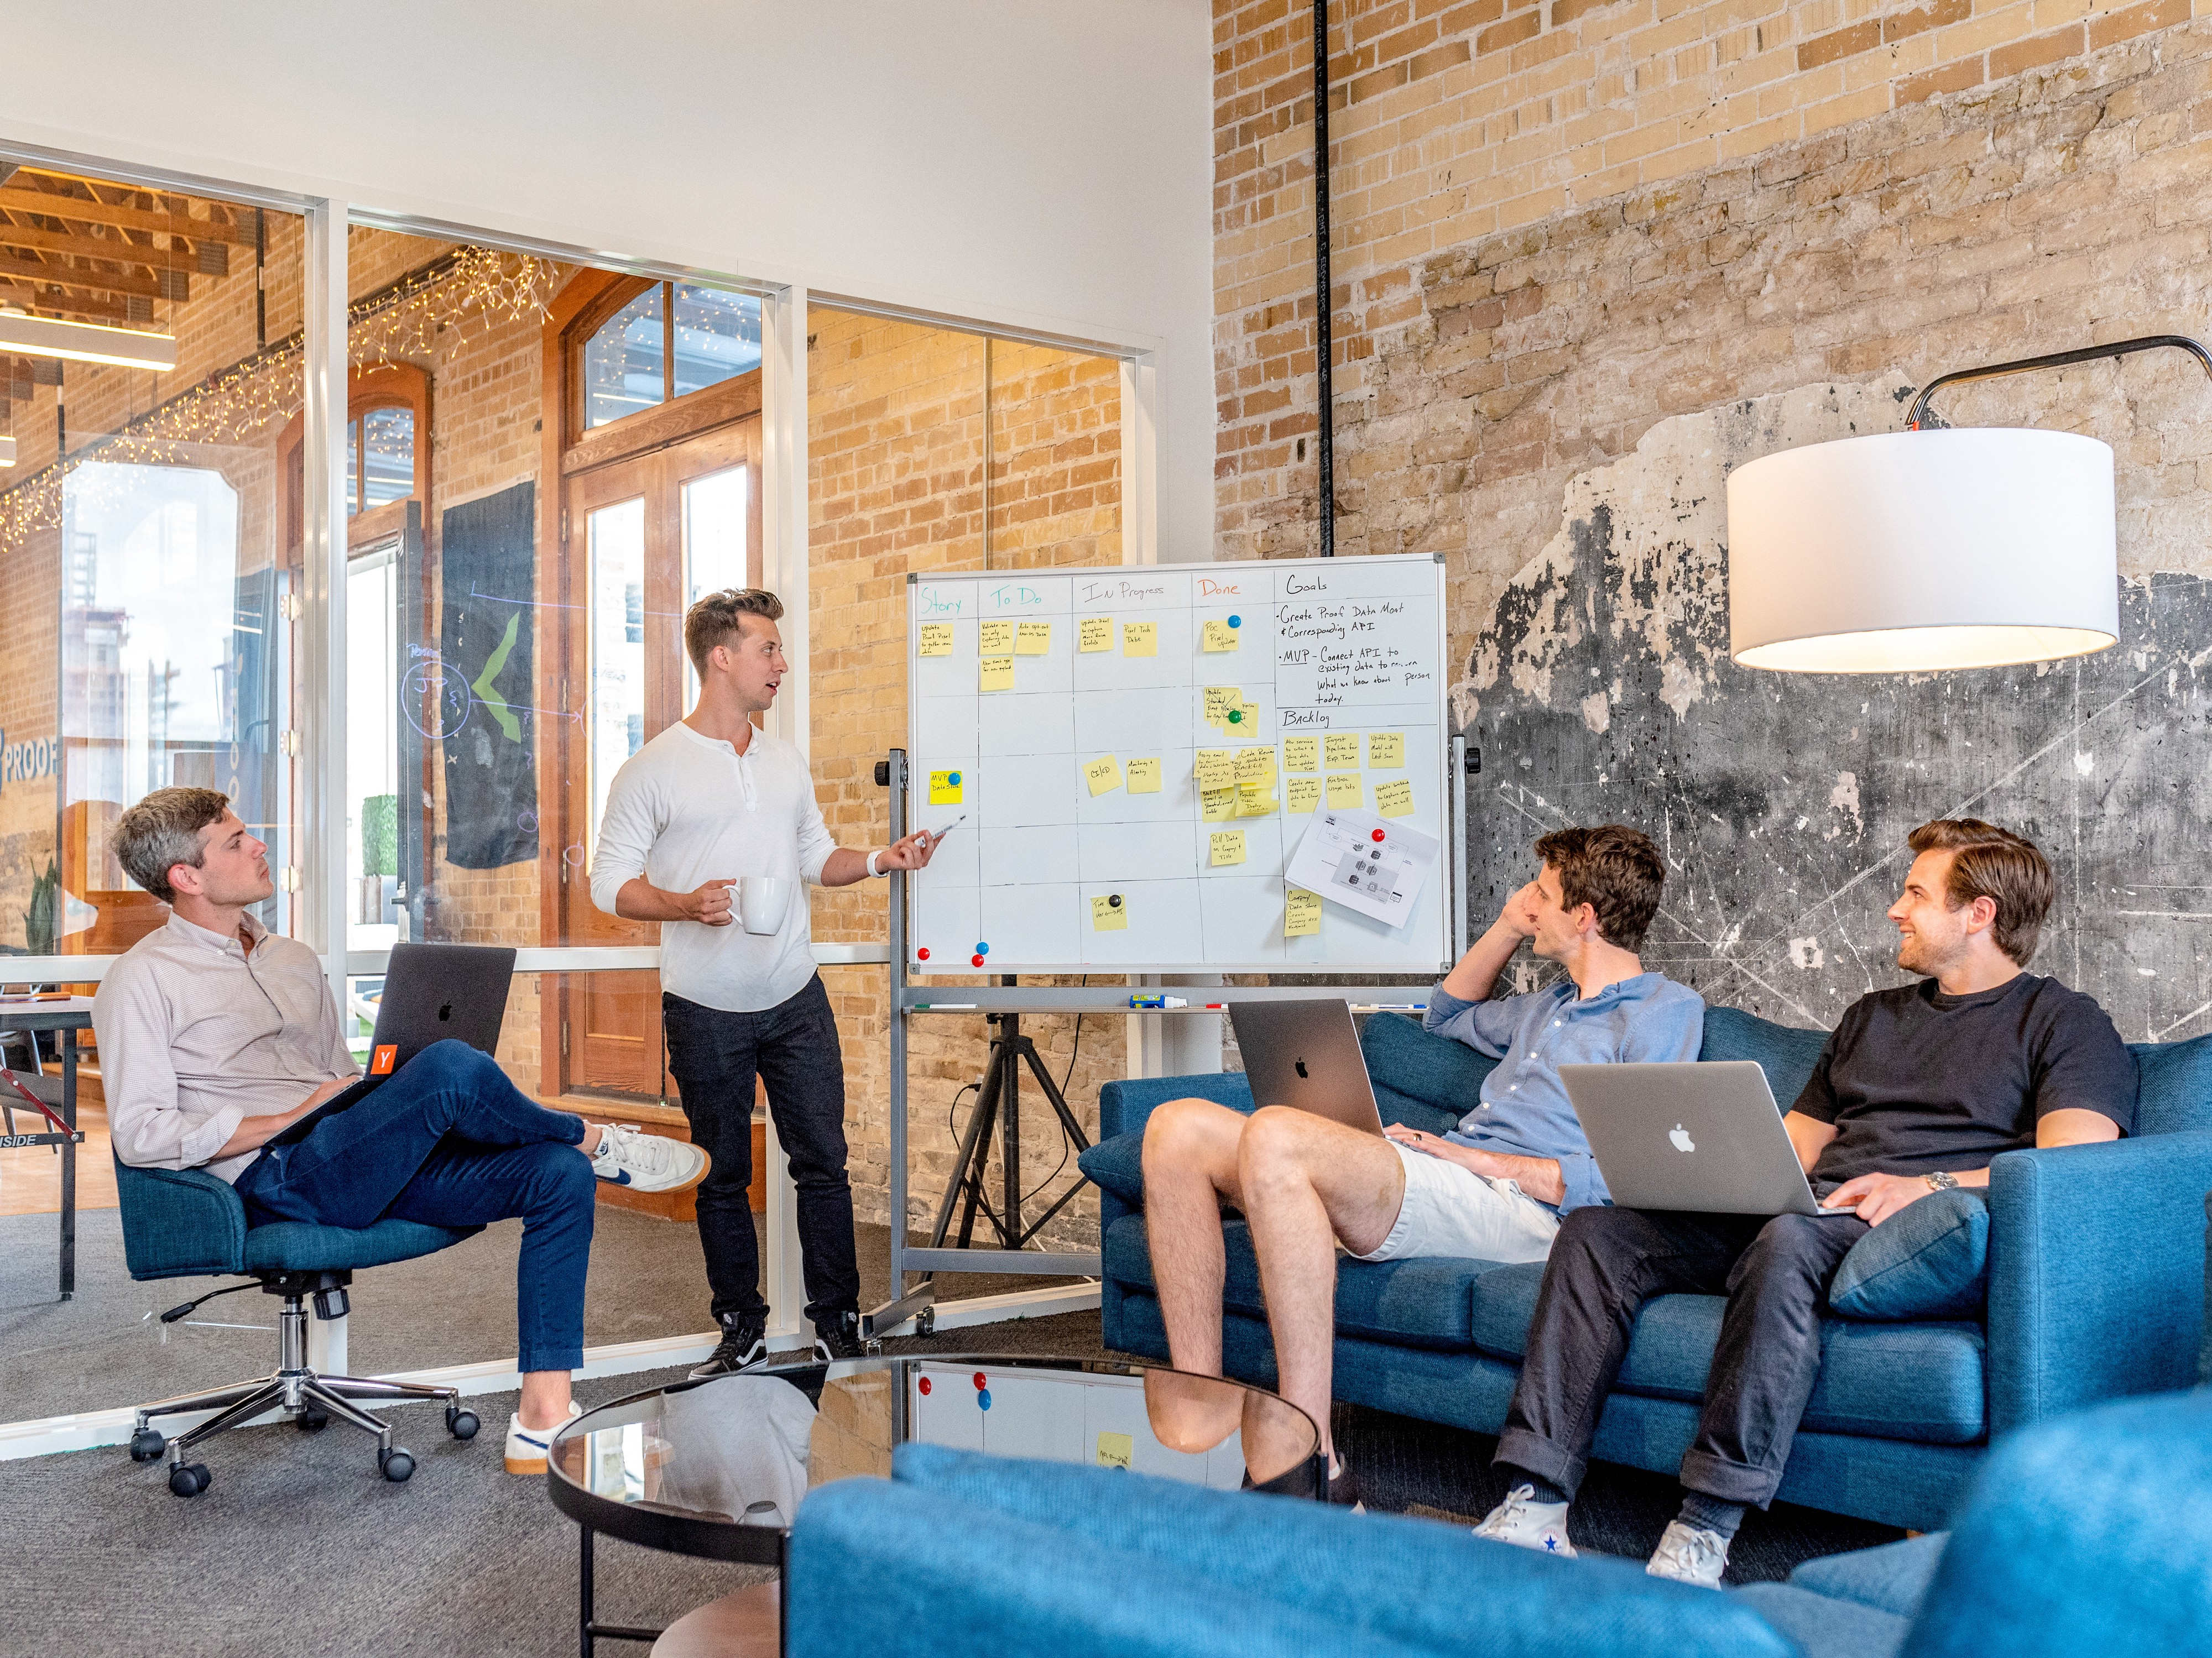 A startup image, where some people are sitting and discussing on a topic through whiteboard